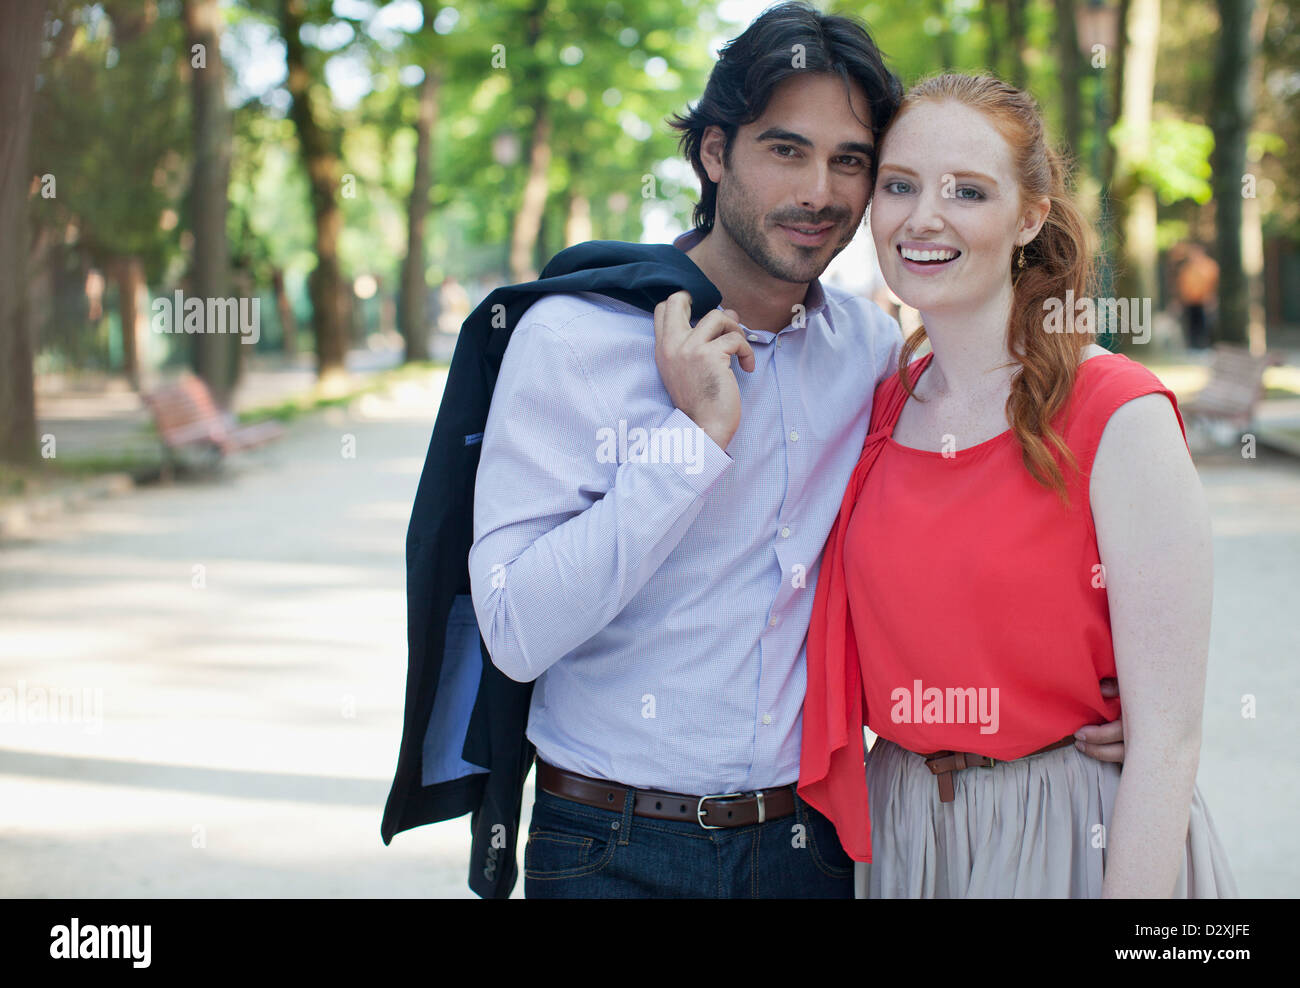 Portrait of smiling couple in park - Stock Image